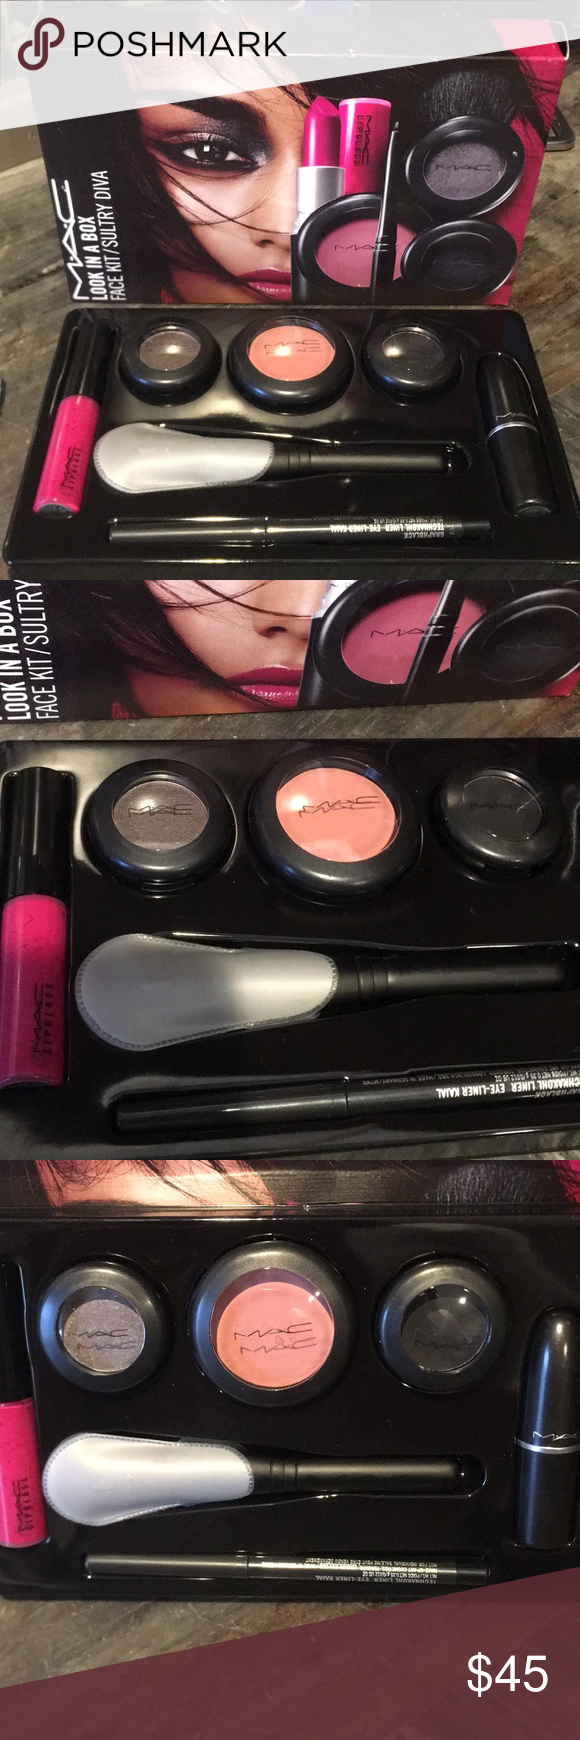 Mac Look In A Box 6 Piece Makeup Gift Set Makeup Gift Sets Mac Looks Gift Set